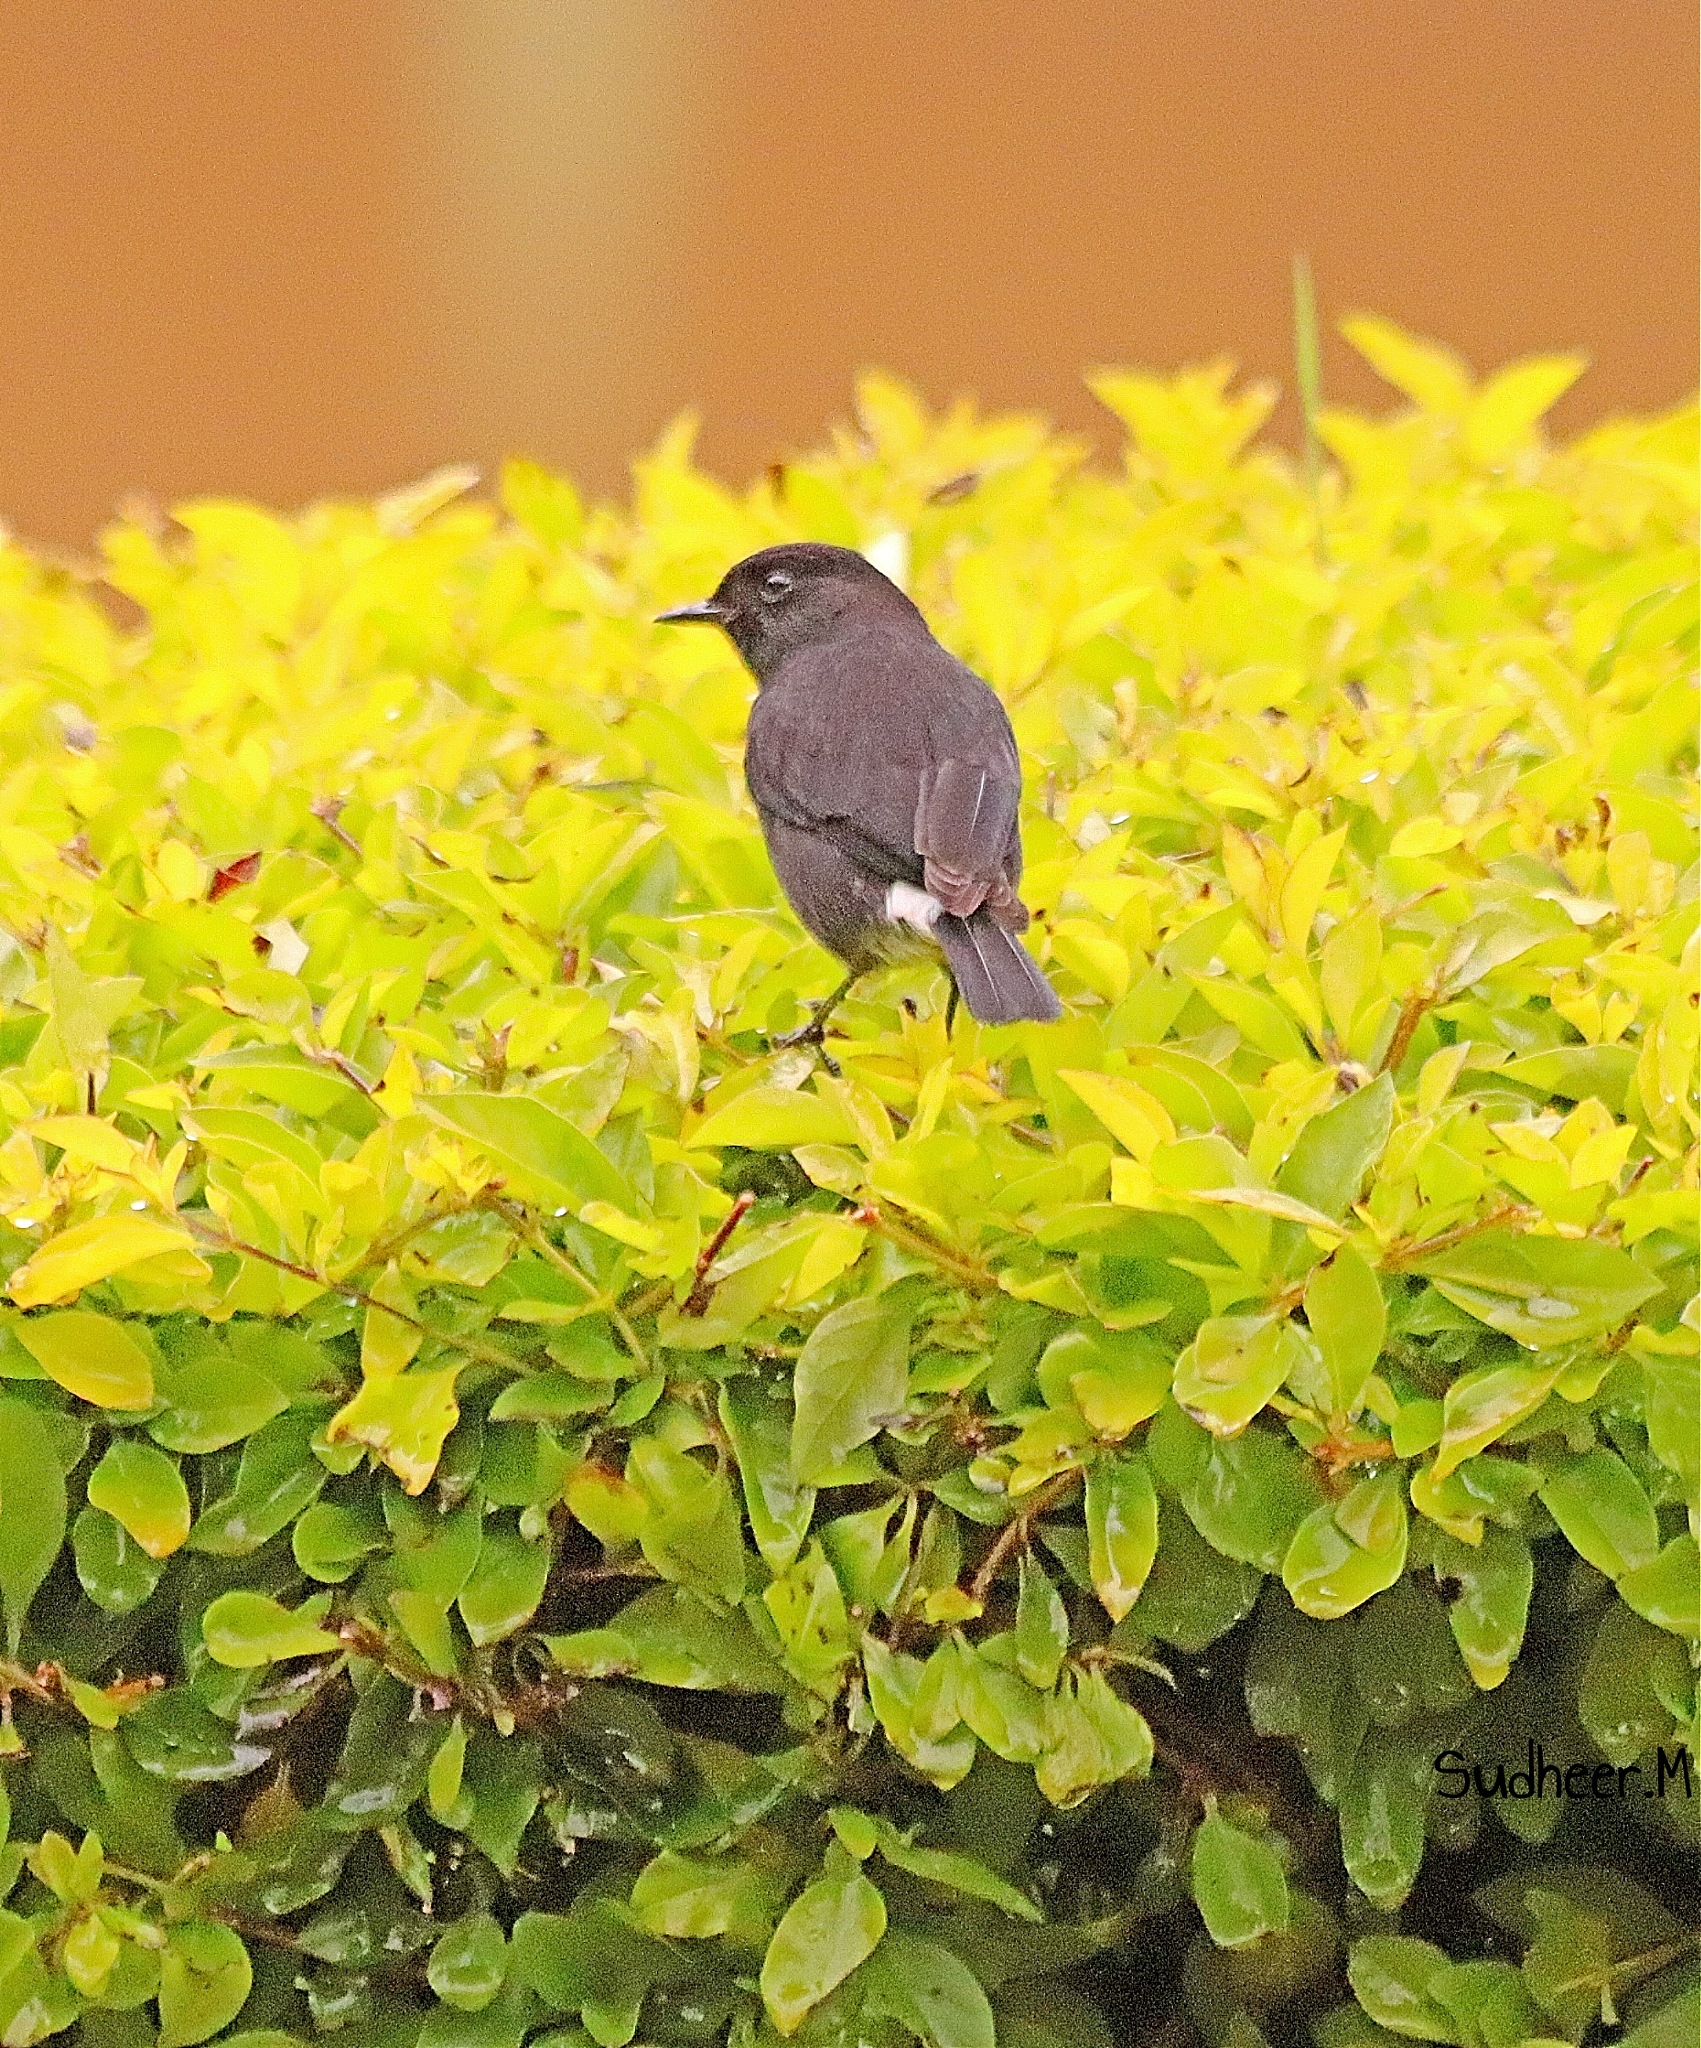 chilling out-- Pied bush chat  by Sudheer Madhurakavi